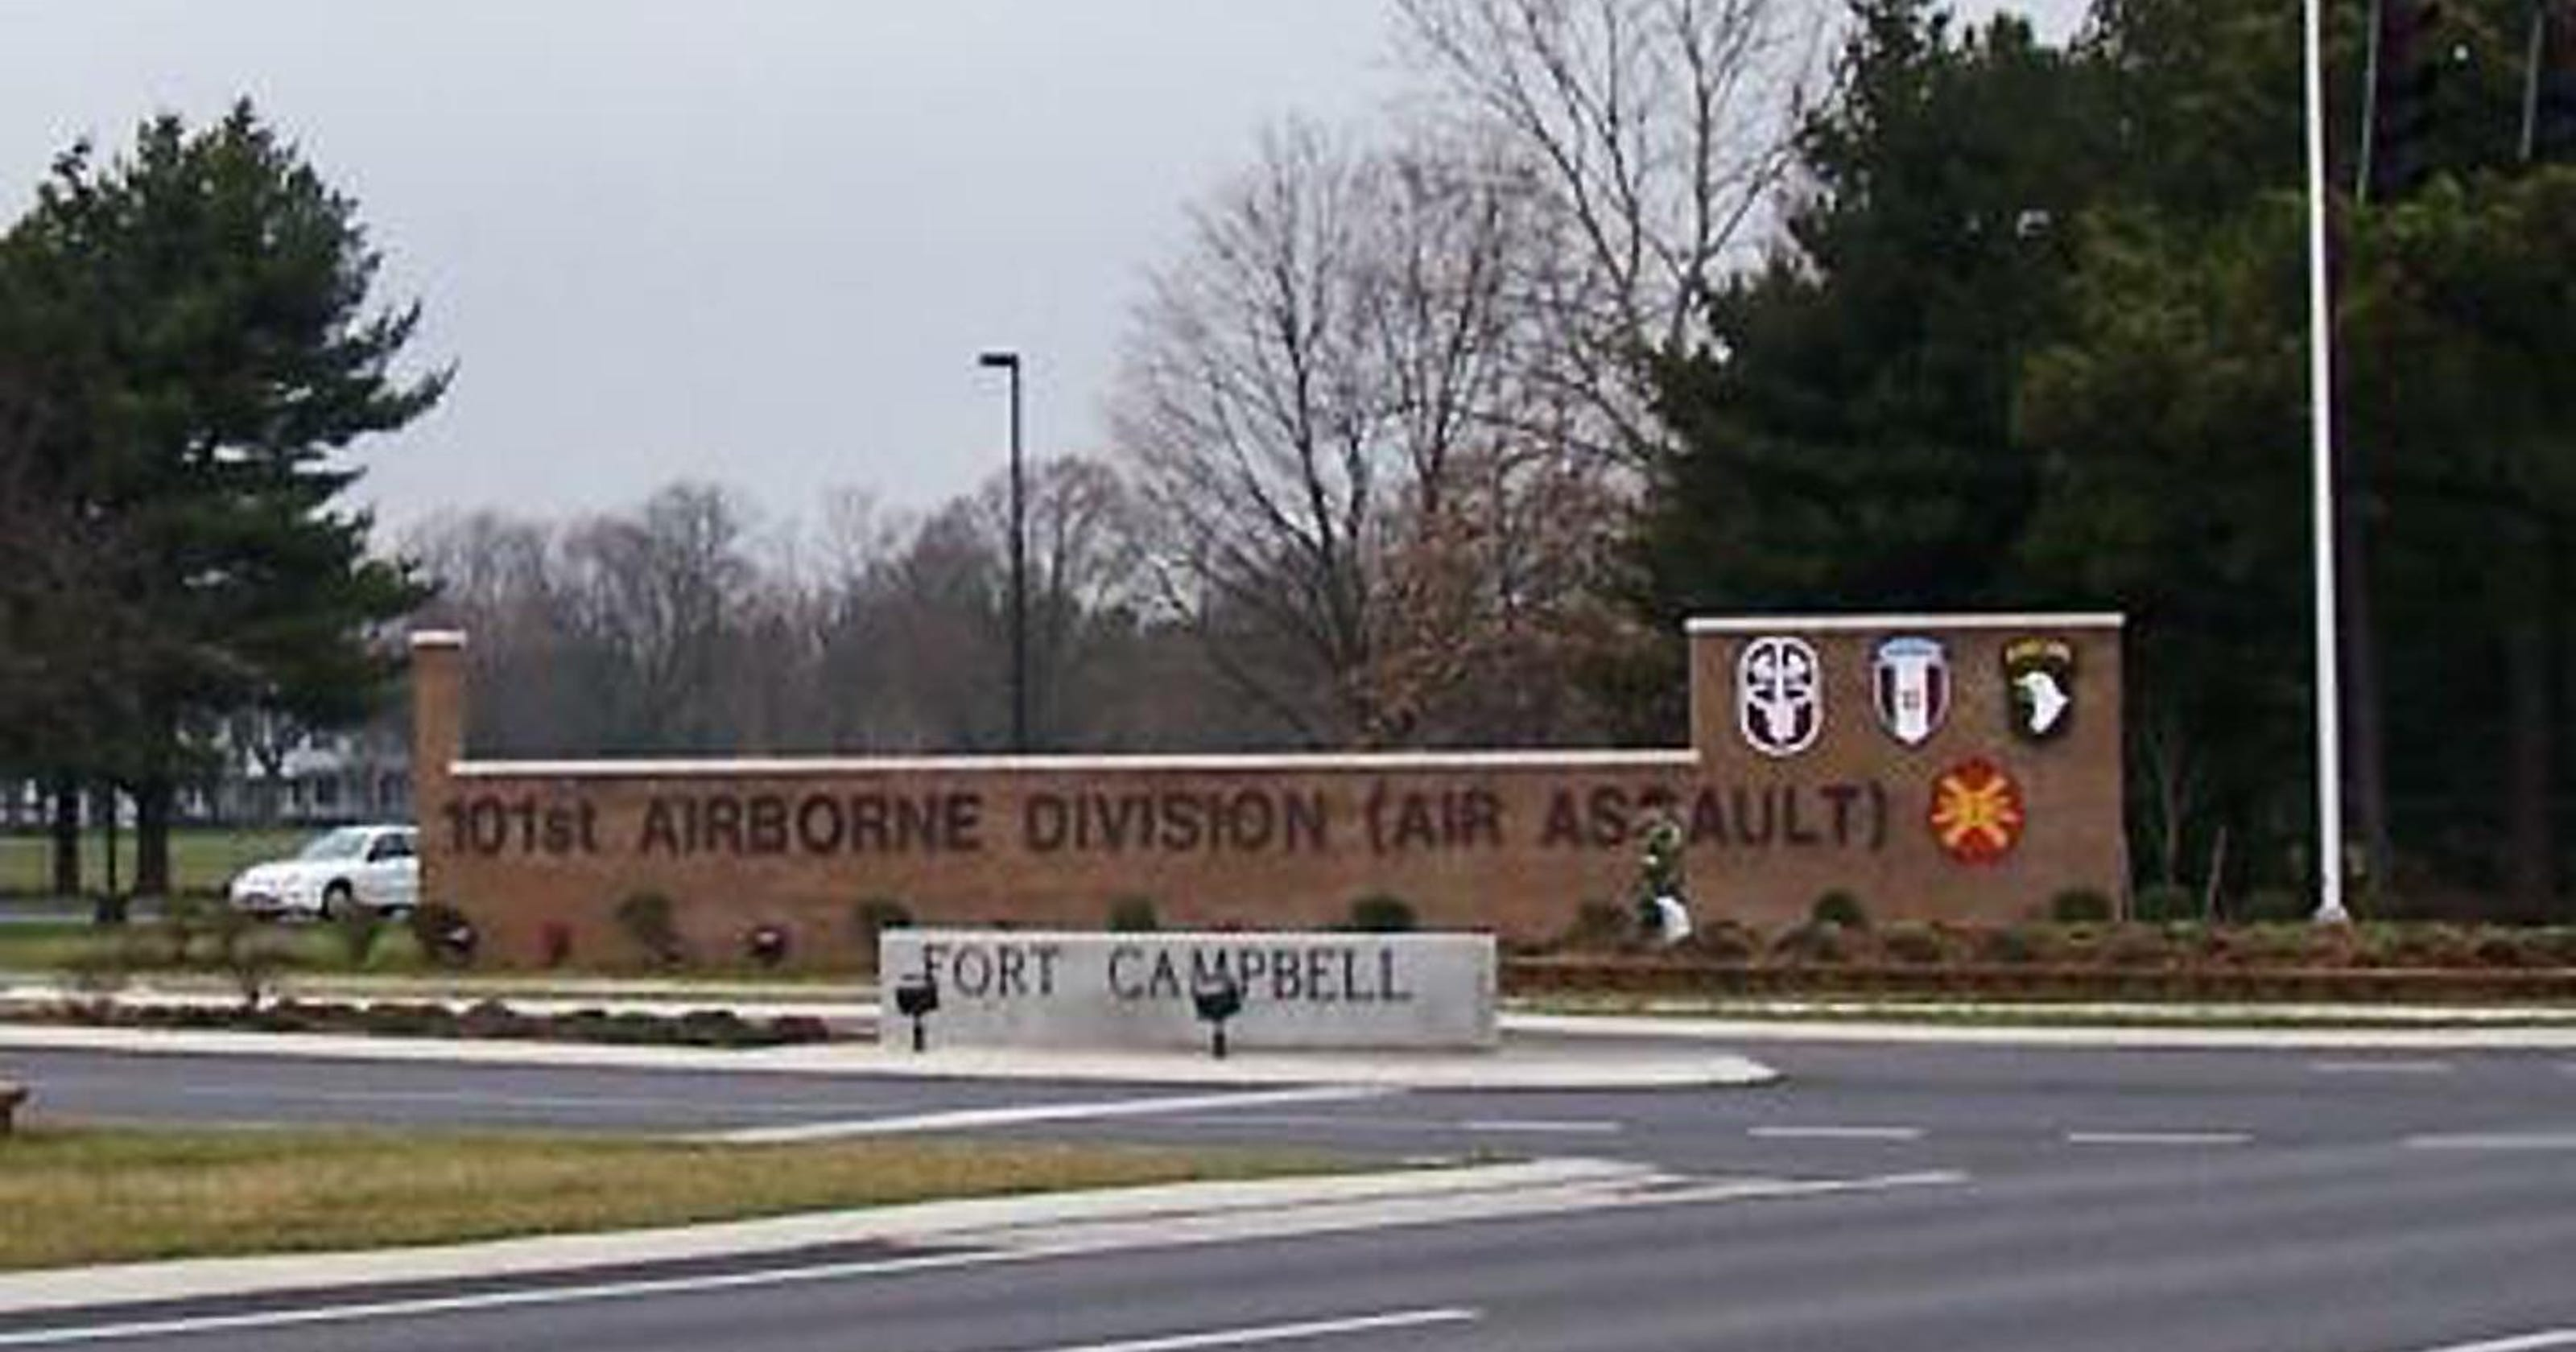 Fort Campbell soldier killed in wreck in Pennsylvania